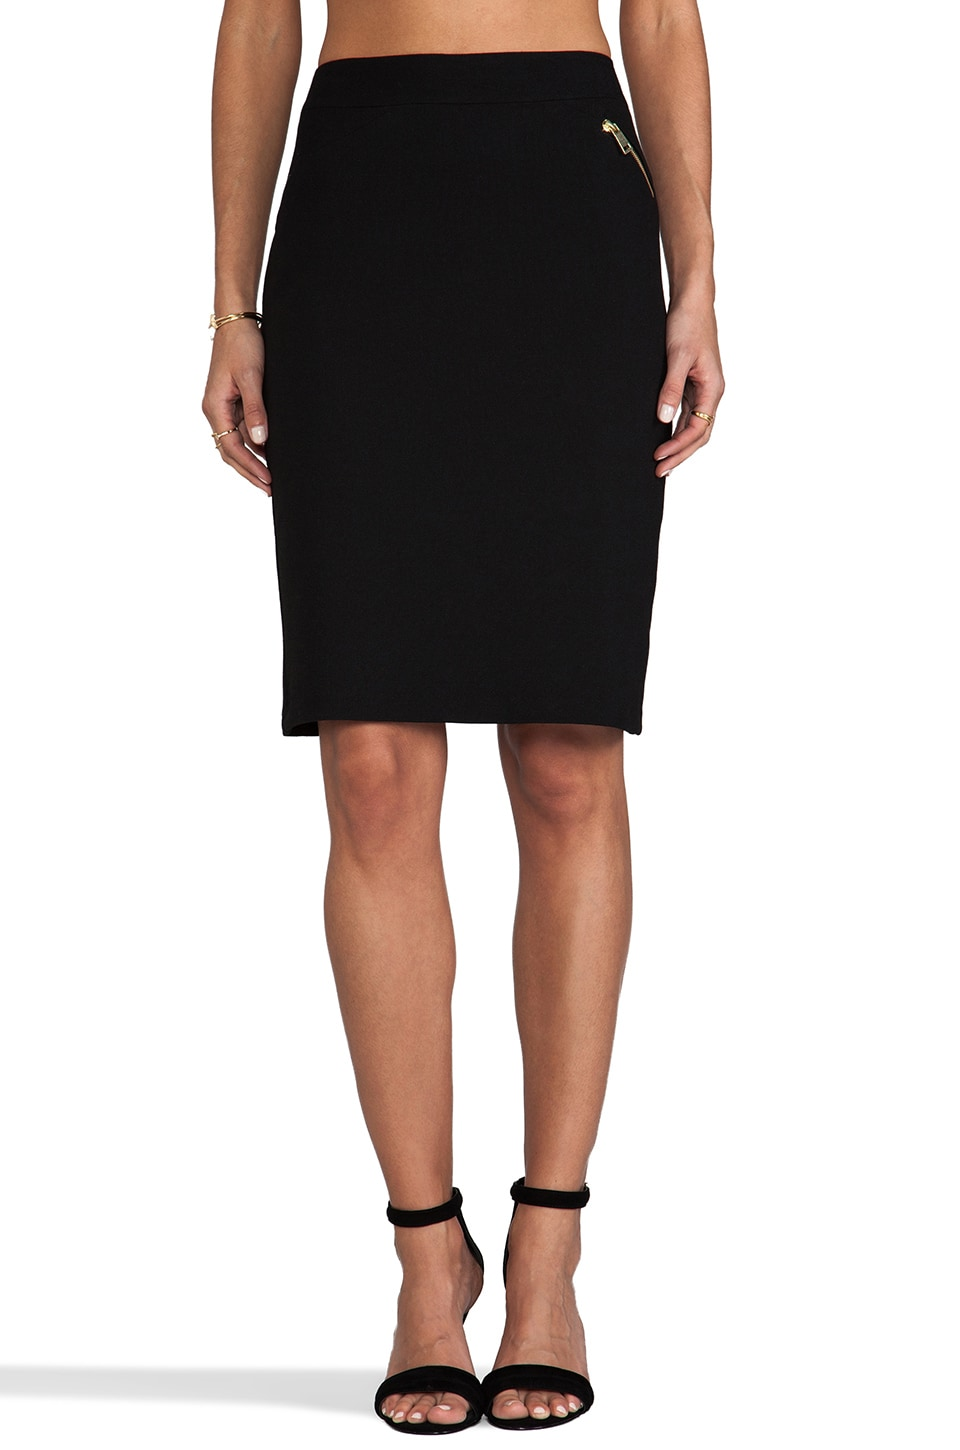 Nanette Lepore Ultra Ray Crepe Gamma Skirt in Black